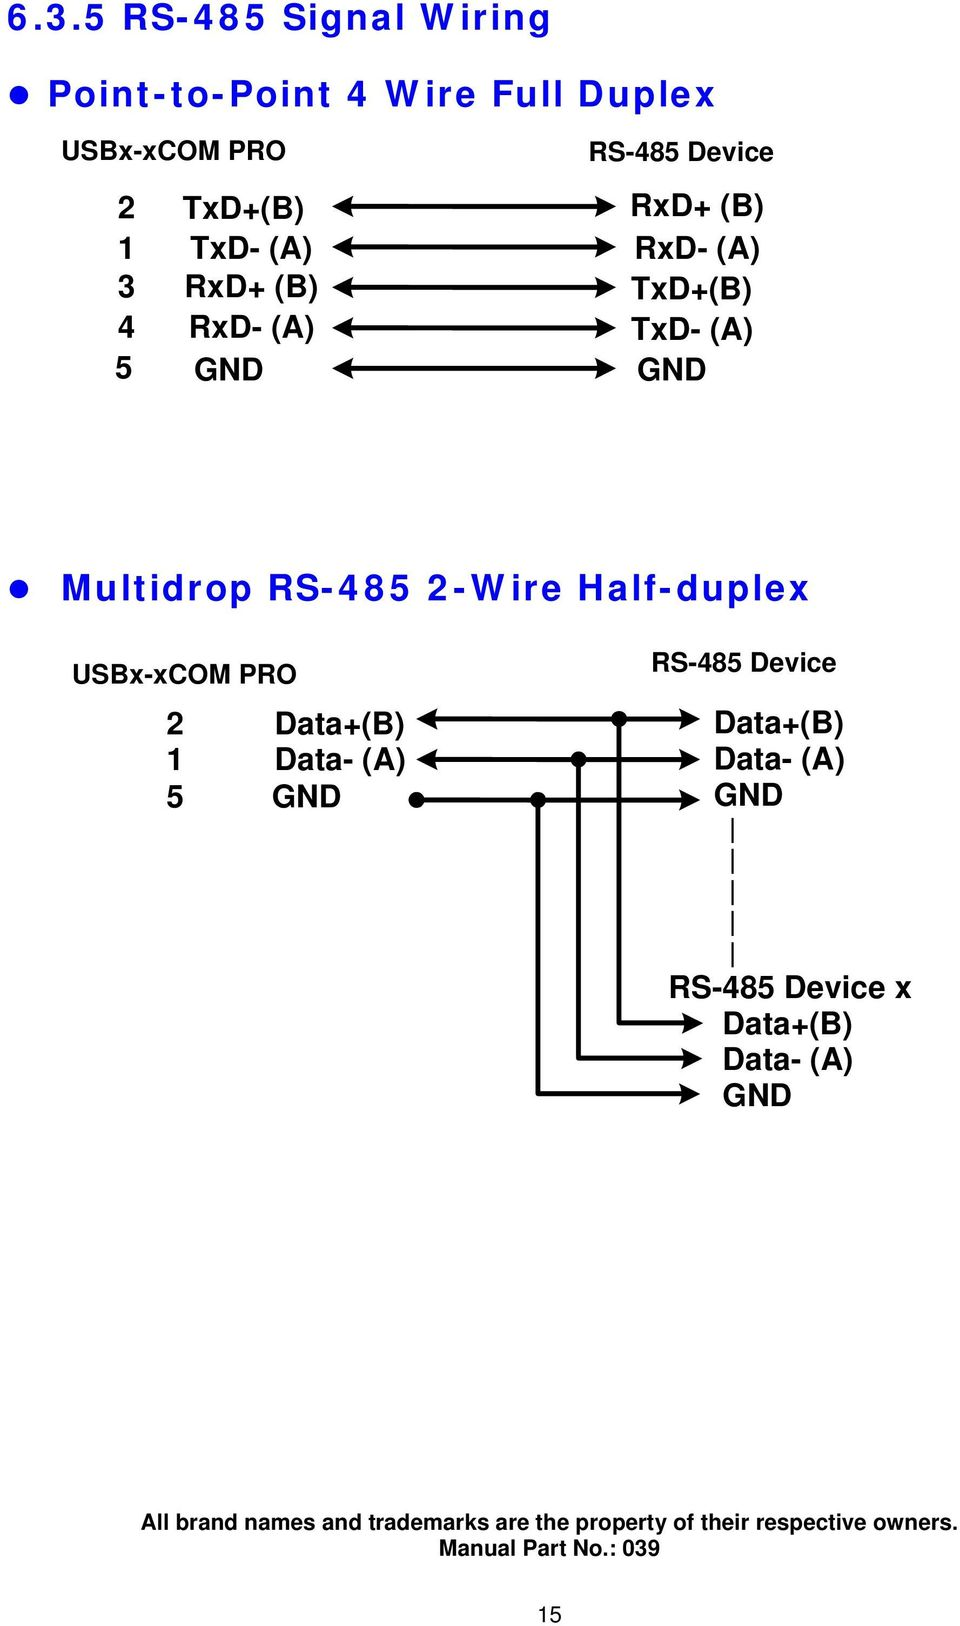 Vscom Usb Pro Series Industrial I O Adapters Pdf Rs485 Multidrop Wiring Data B 1 A 5 Rs 485 Device